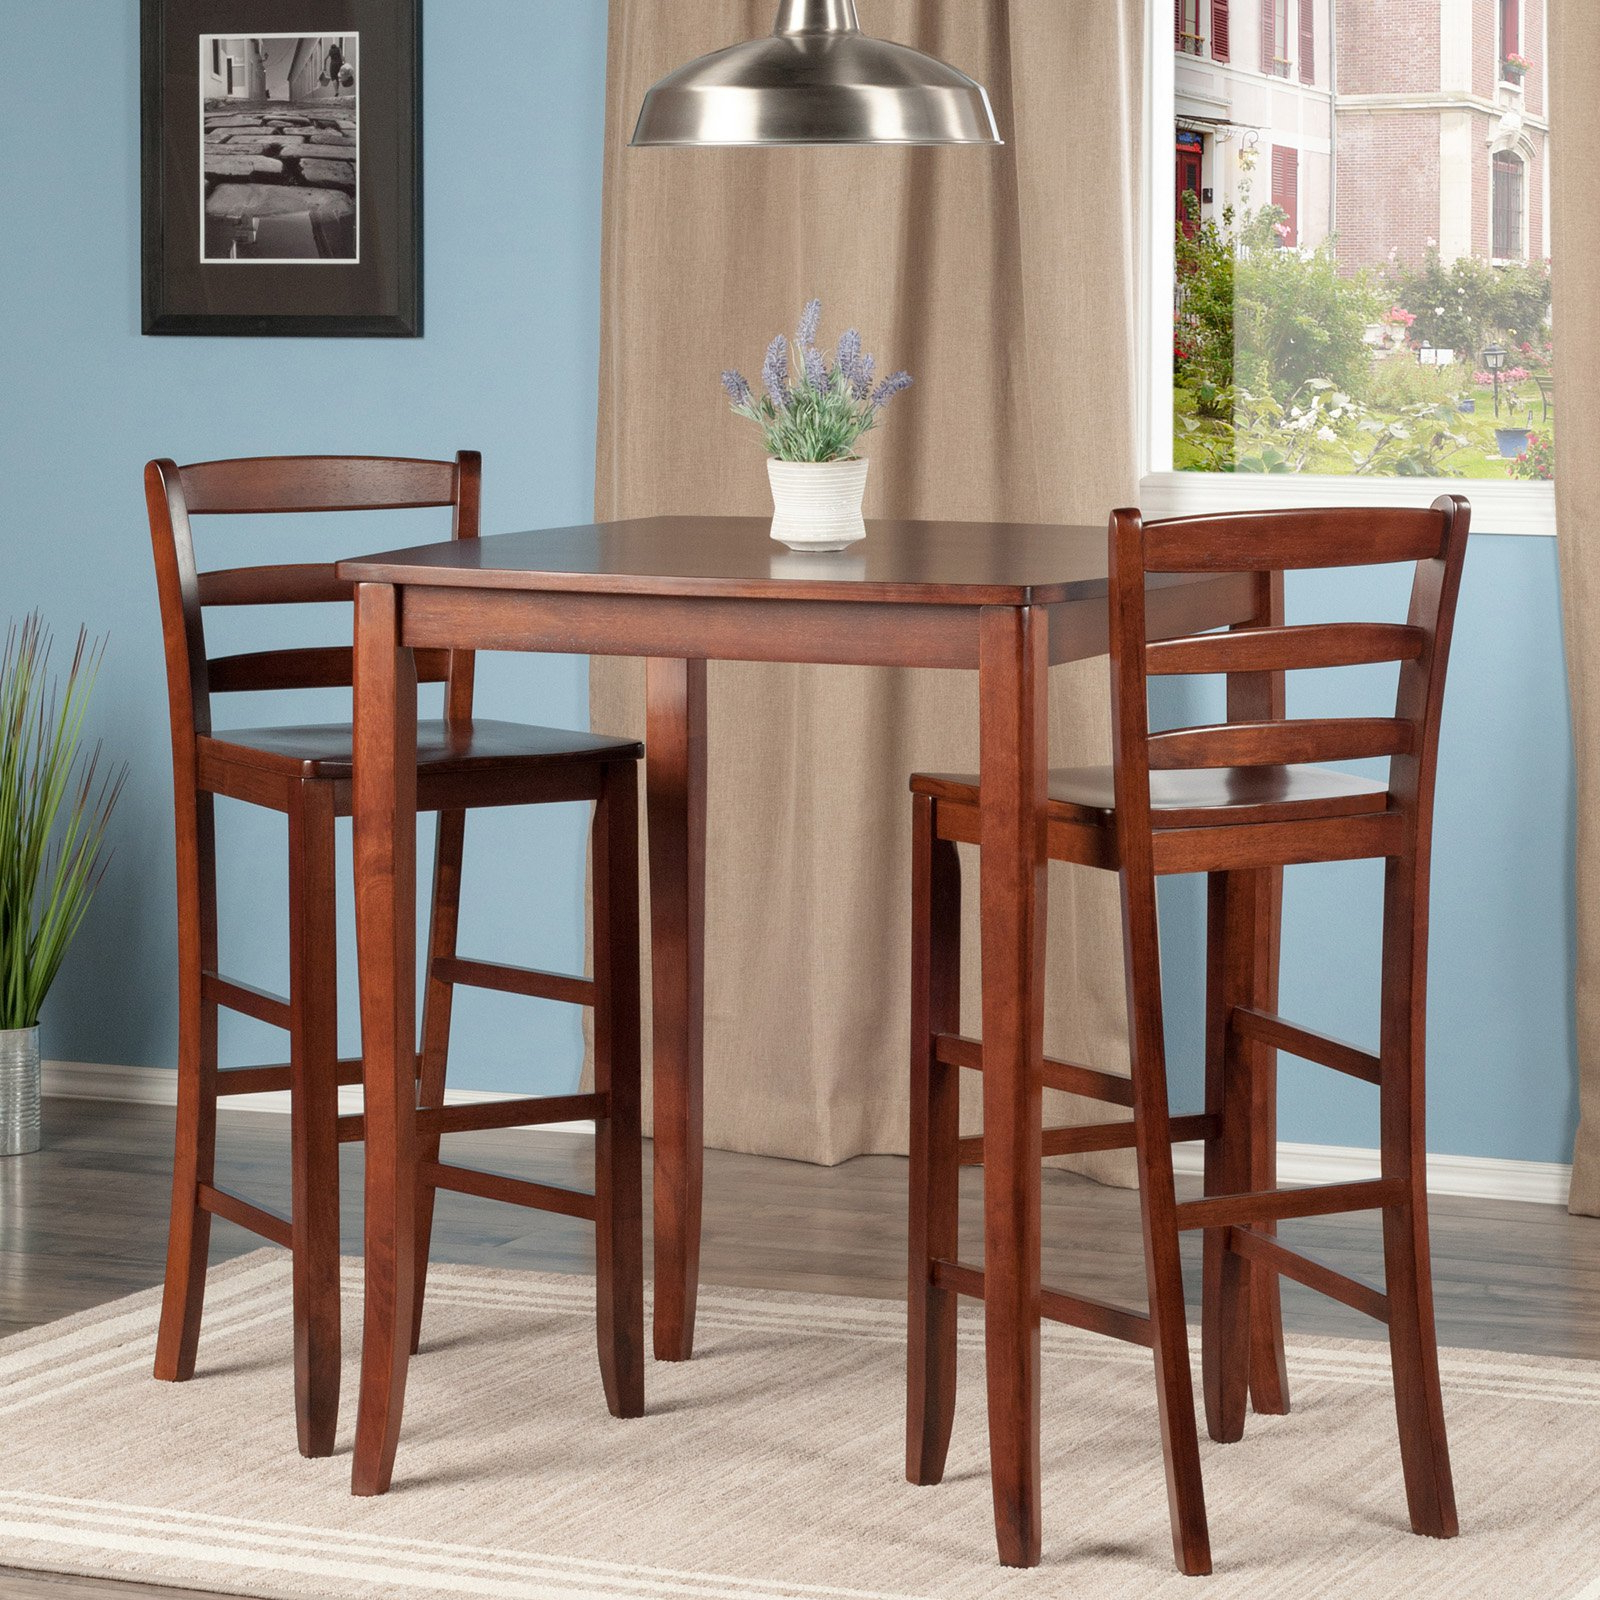 Well Known Winsome Inglewood 3 Piece Pub Table Set With Ladder Back Stools In In Winsome 3 Piece Counter Height Dining Sets (View 14 of 25)